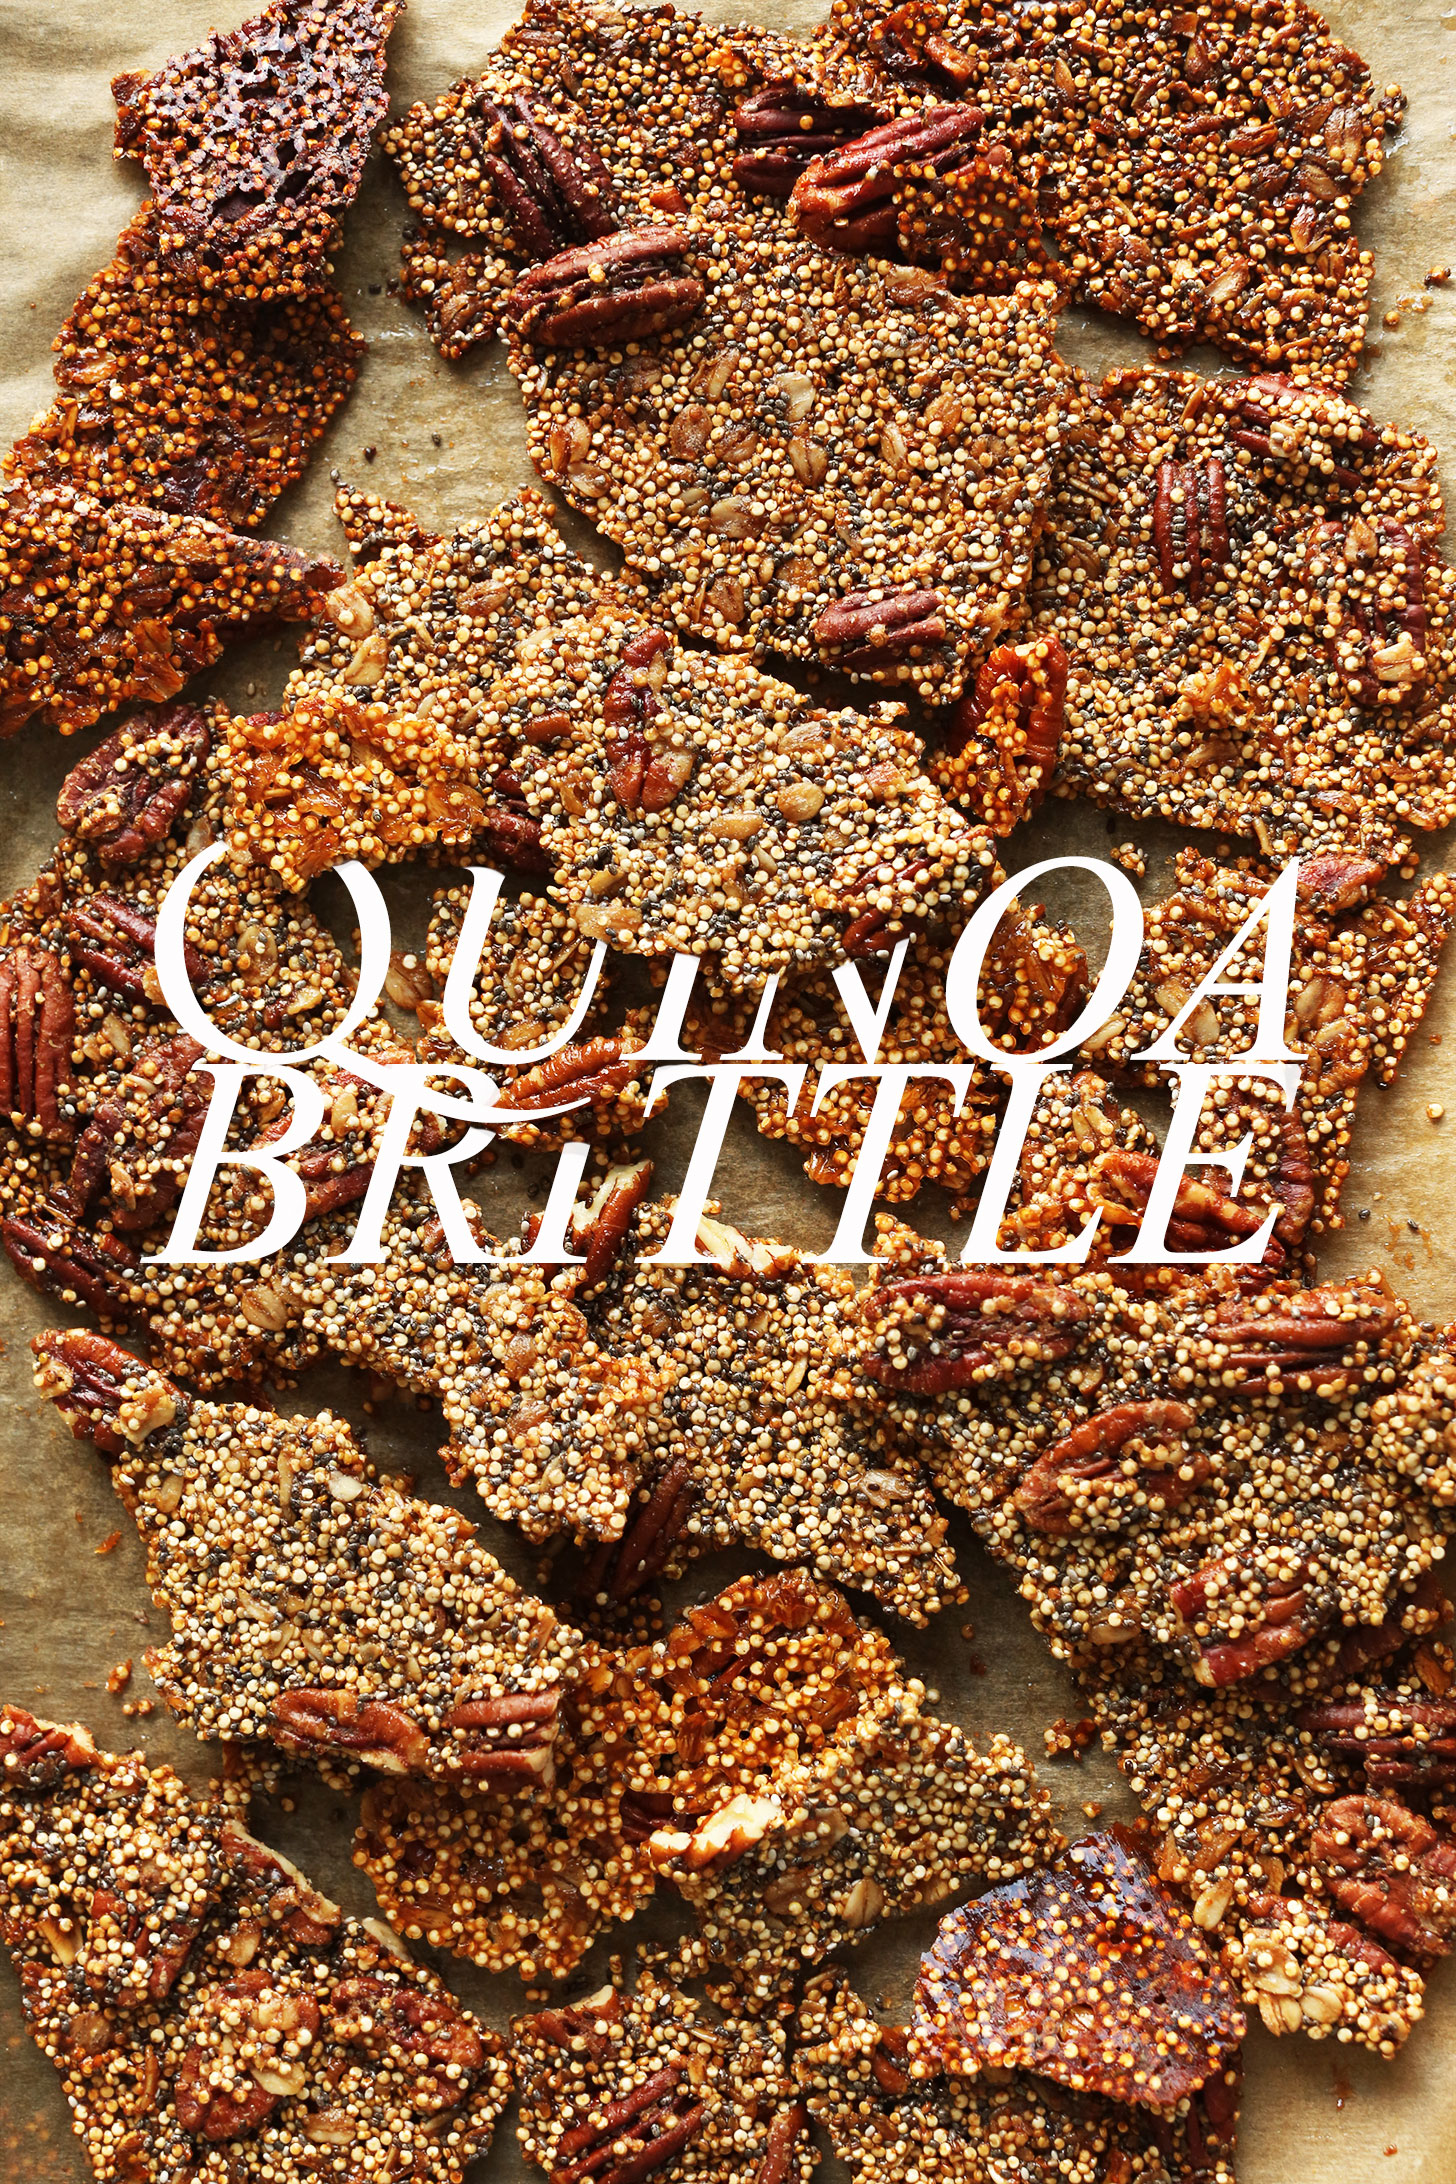 Parchment-lined baking sheet with chunks of our gluten-free vegan Quinoa Brittle recipe